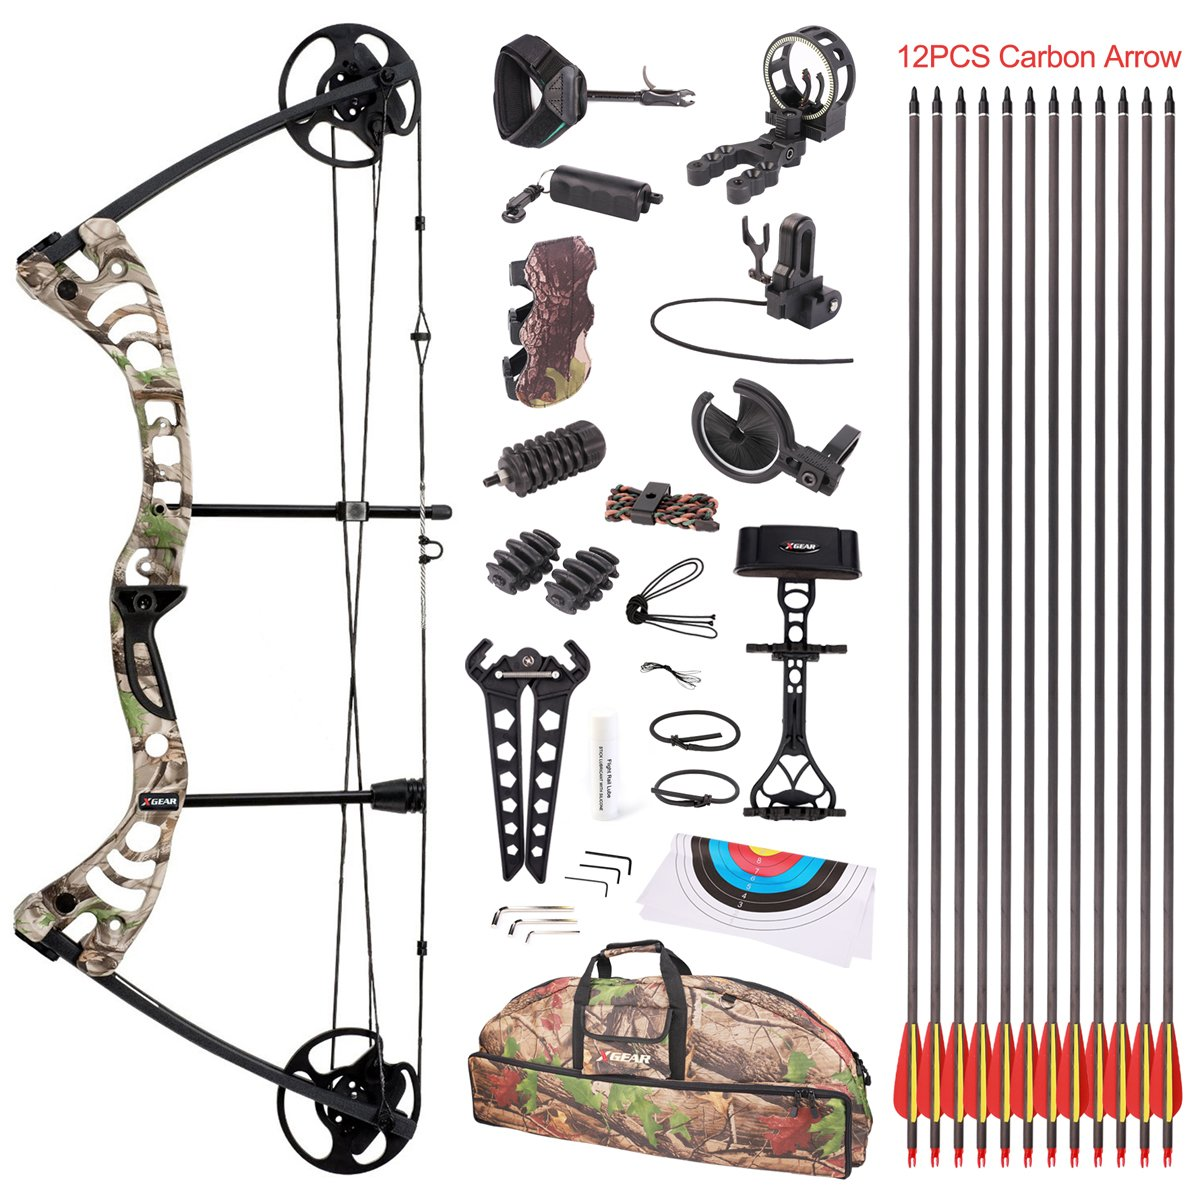 "Leader Accessories Compound Bow 30-55lbs 19"" – 29"" Archery Hunting Equipment with Max Speed 296fps, Right Handed"